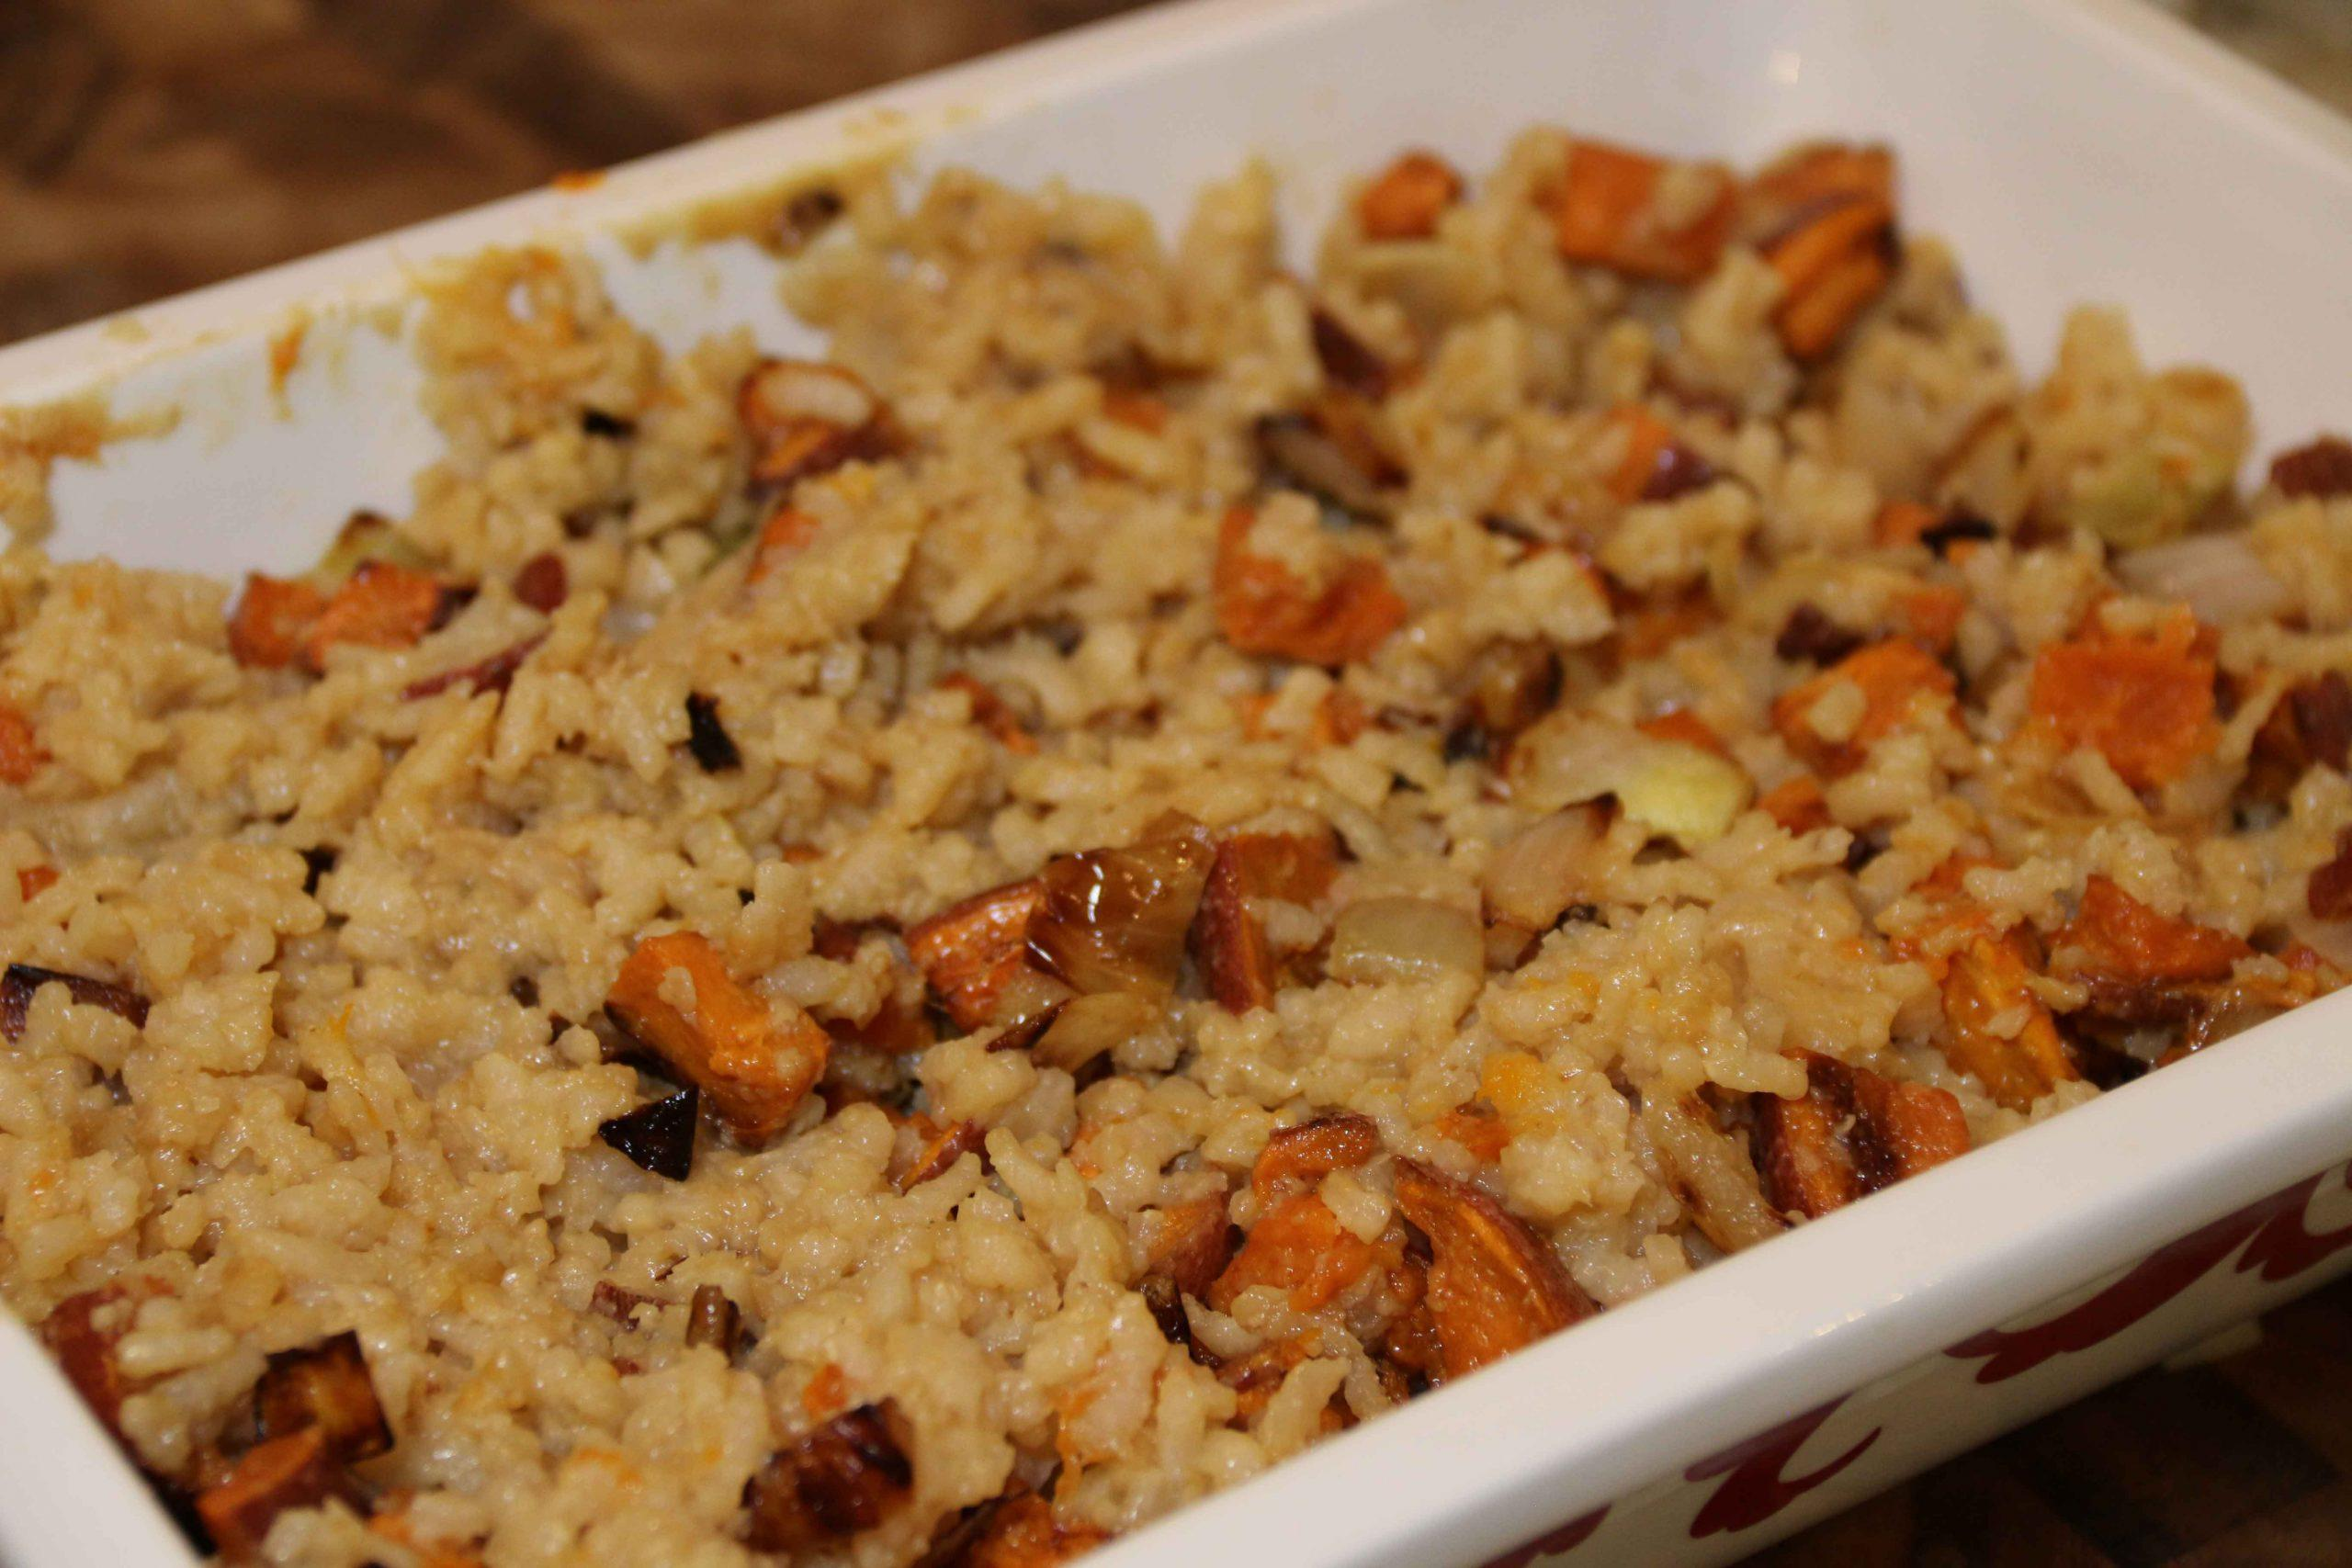 I mixed the sweet flavor of a sweet potato and the creaminess of risotto to create this yummy sweet potato risotto. Perfect for Passover!